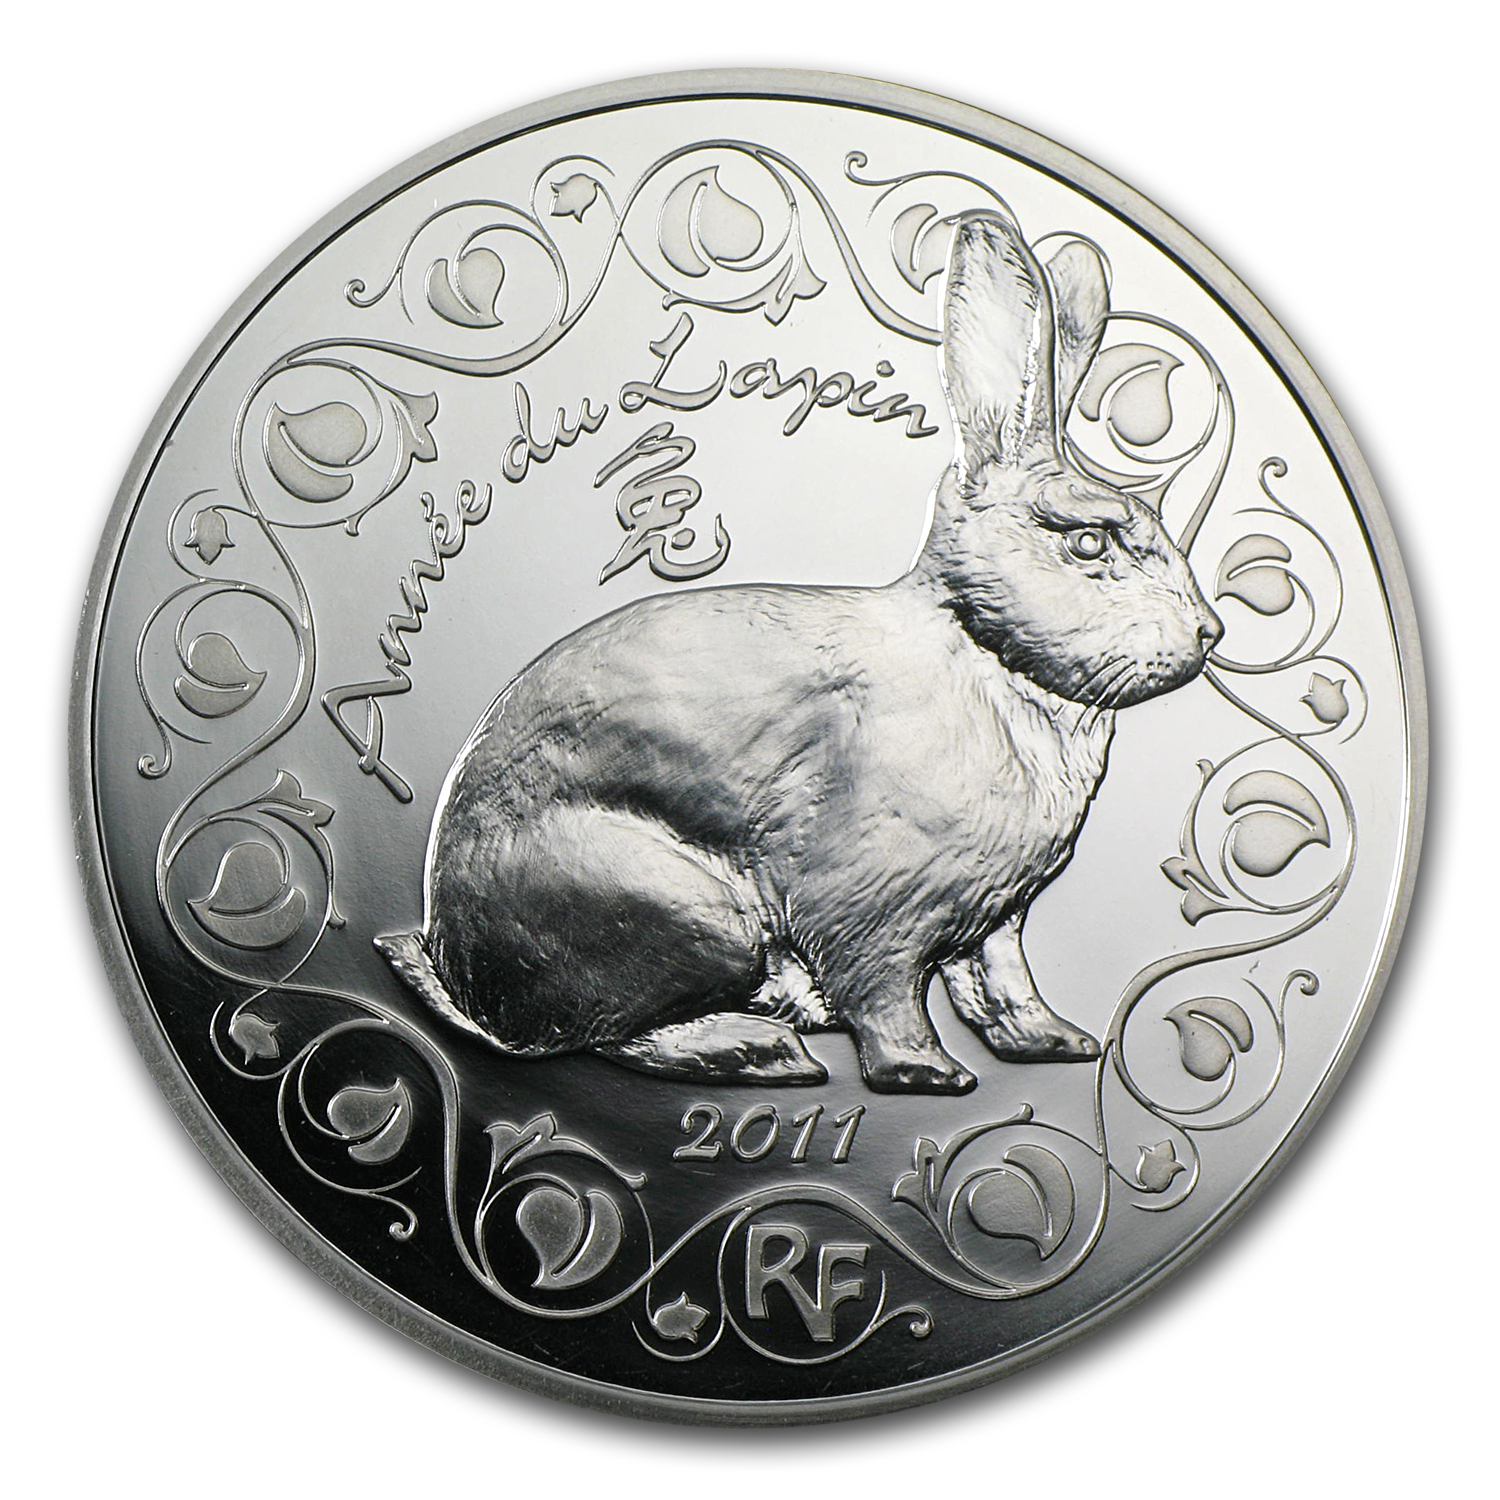 2011 France Silver €5 Year of the Rabbit BU (Lunar Series)